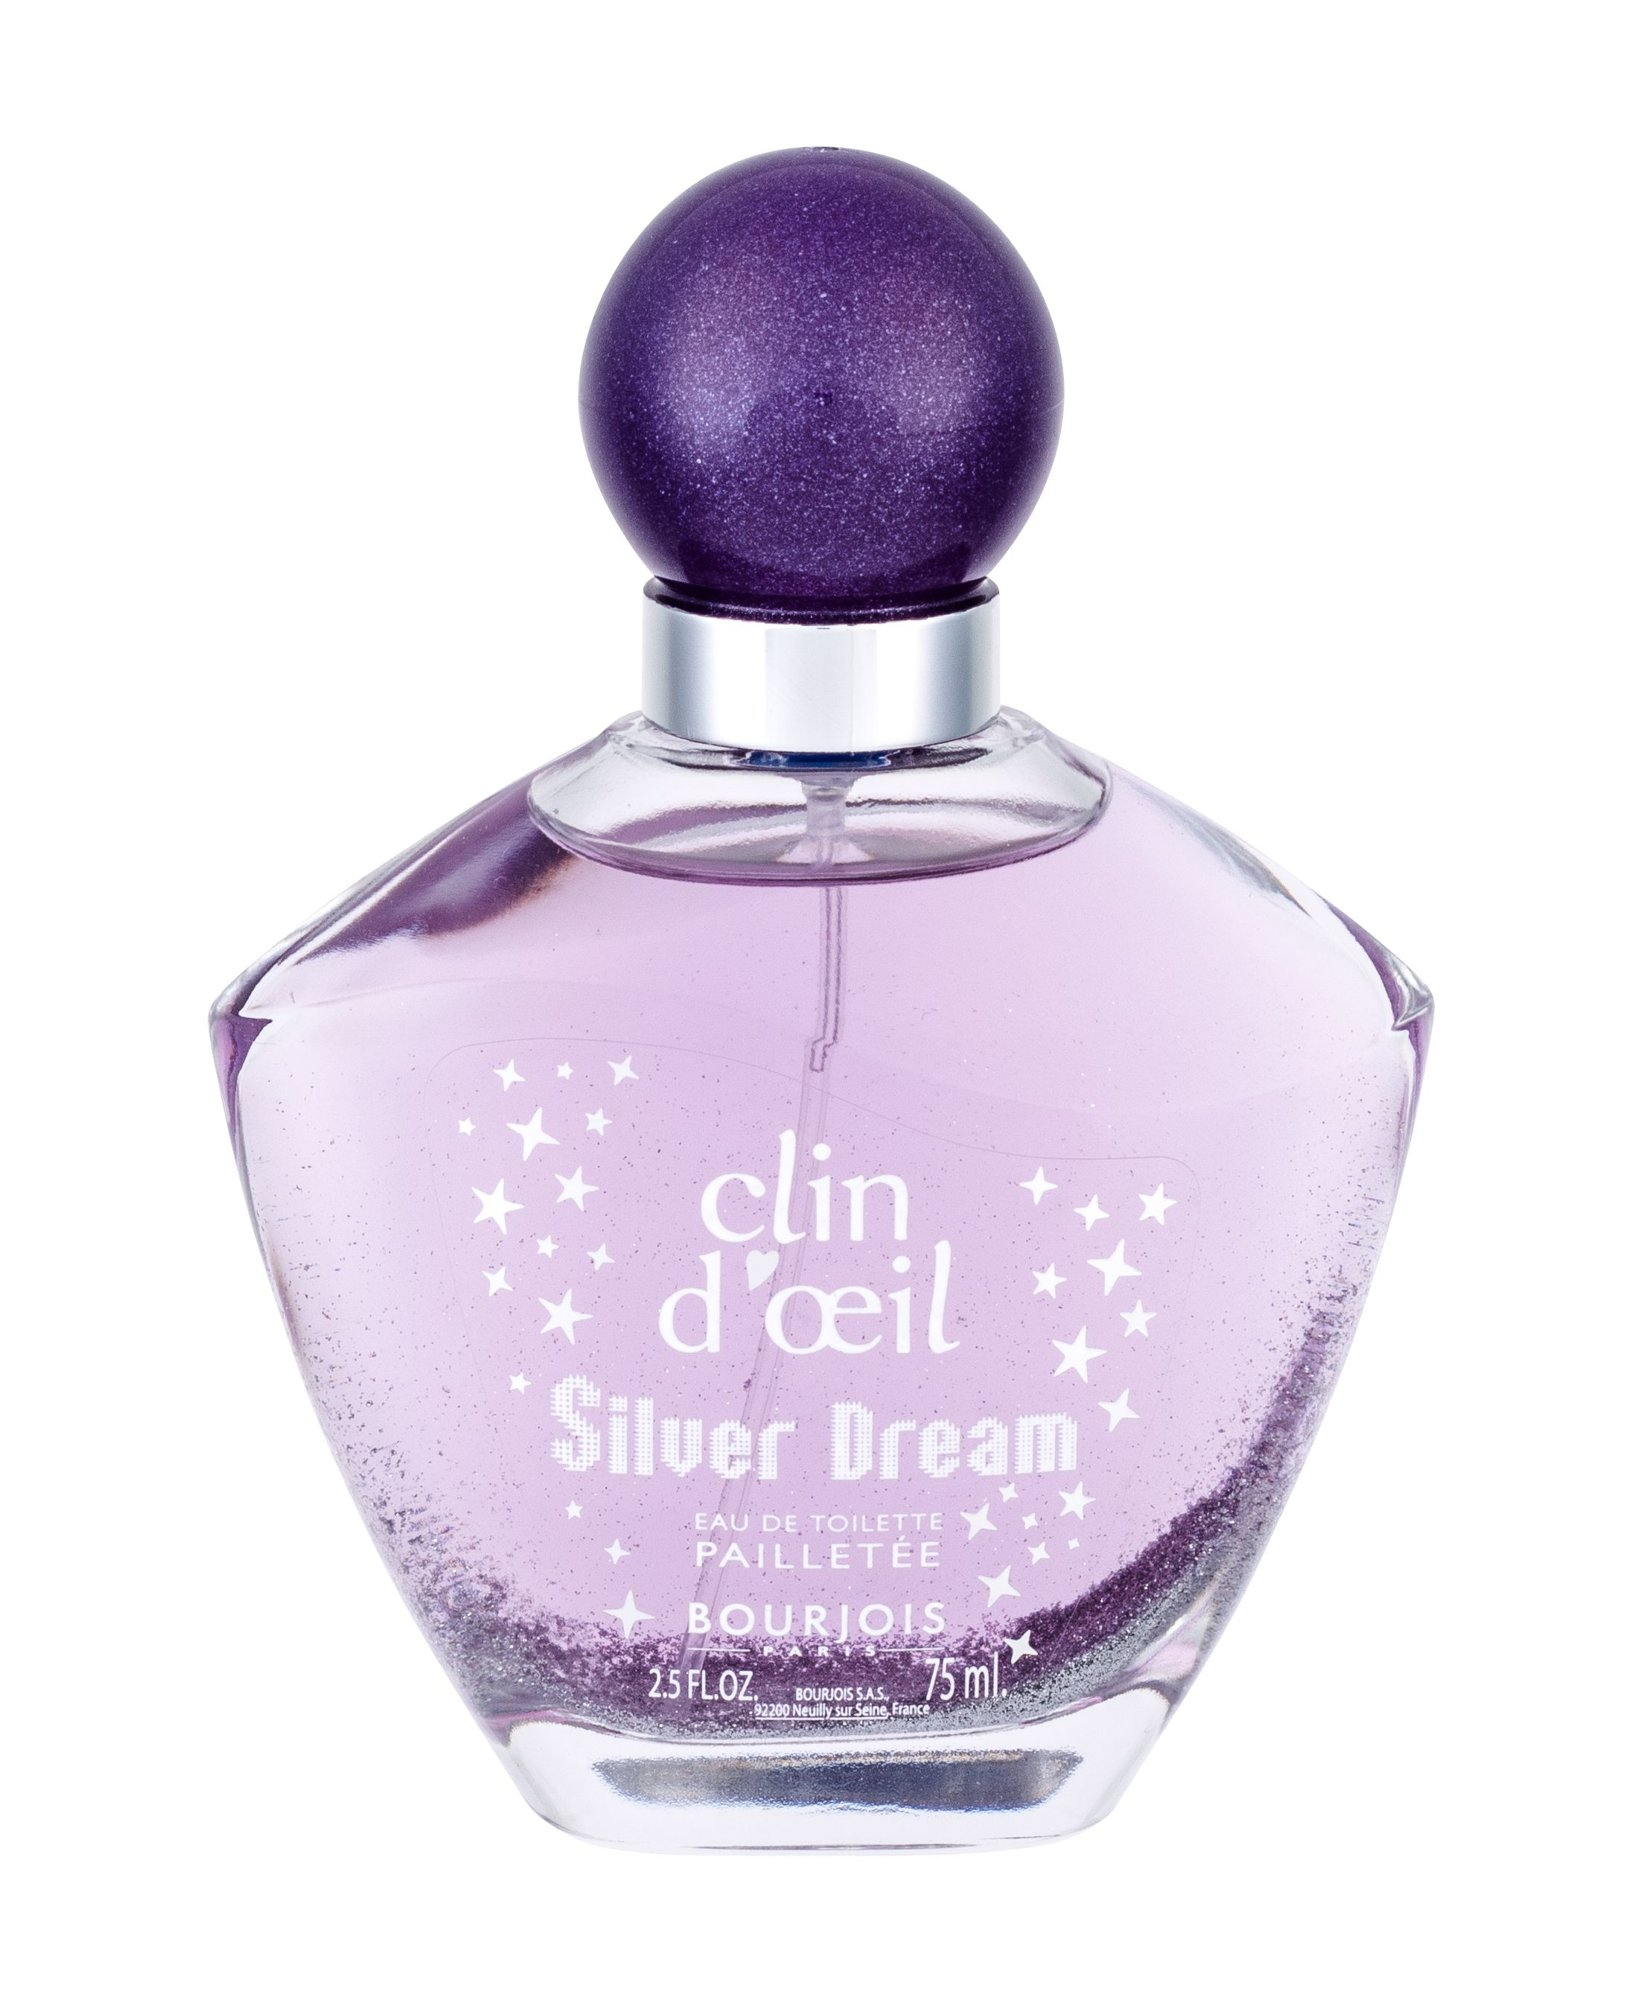 BOURJOIS Paris Clin d´Oeil Silver Dream, edt 75ml